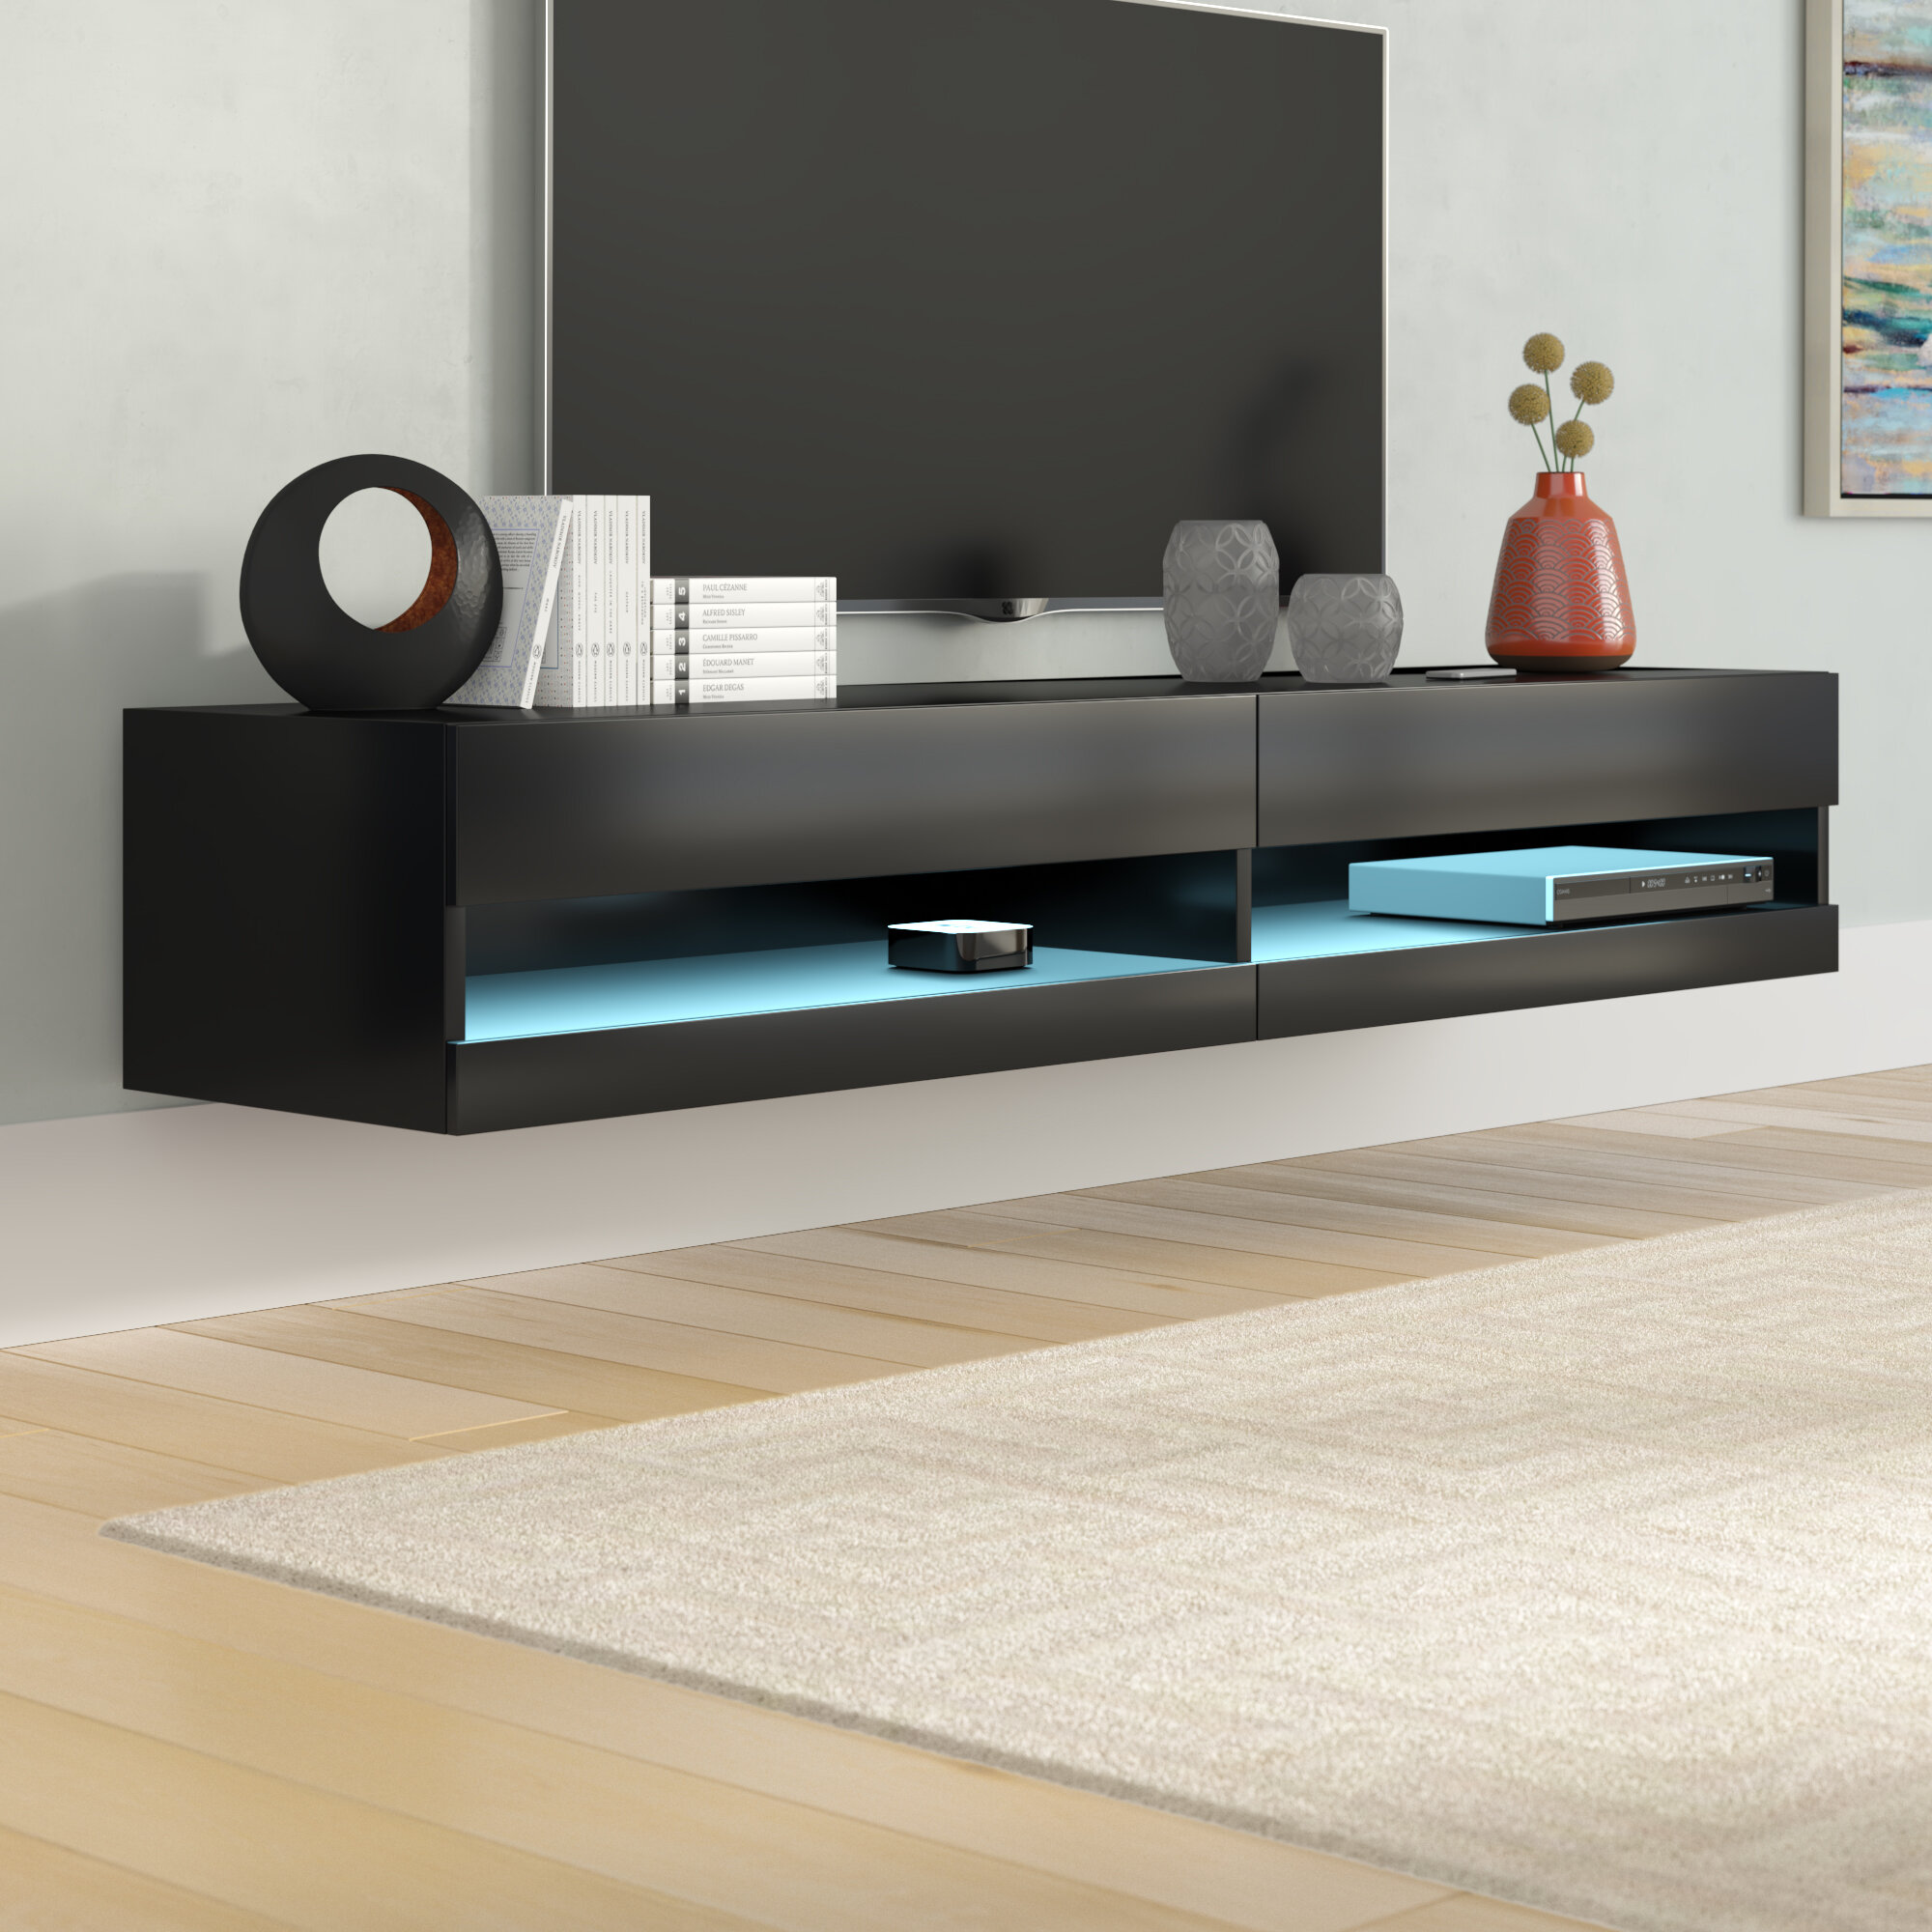 Orren ellis ramsdell tv stand for tvs up to 80 reviews wayfair